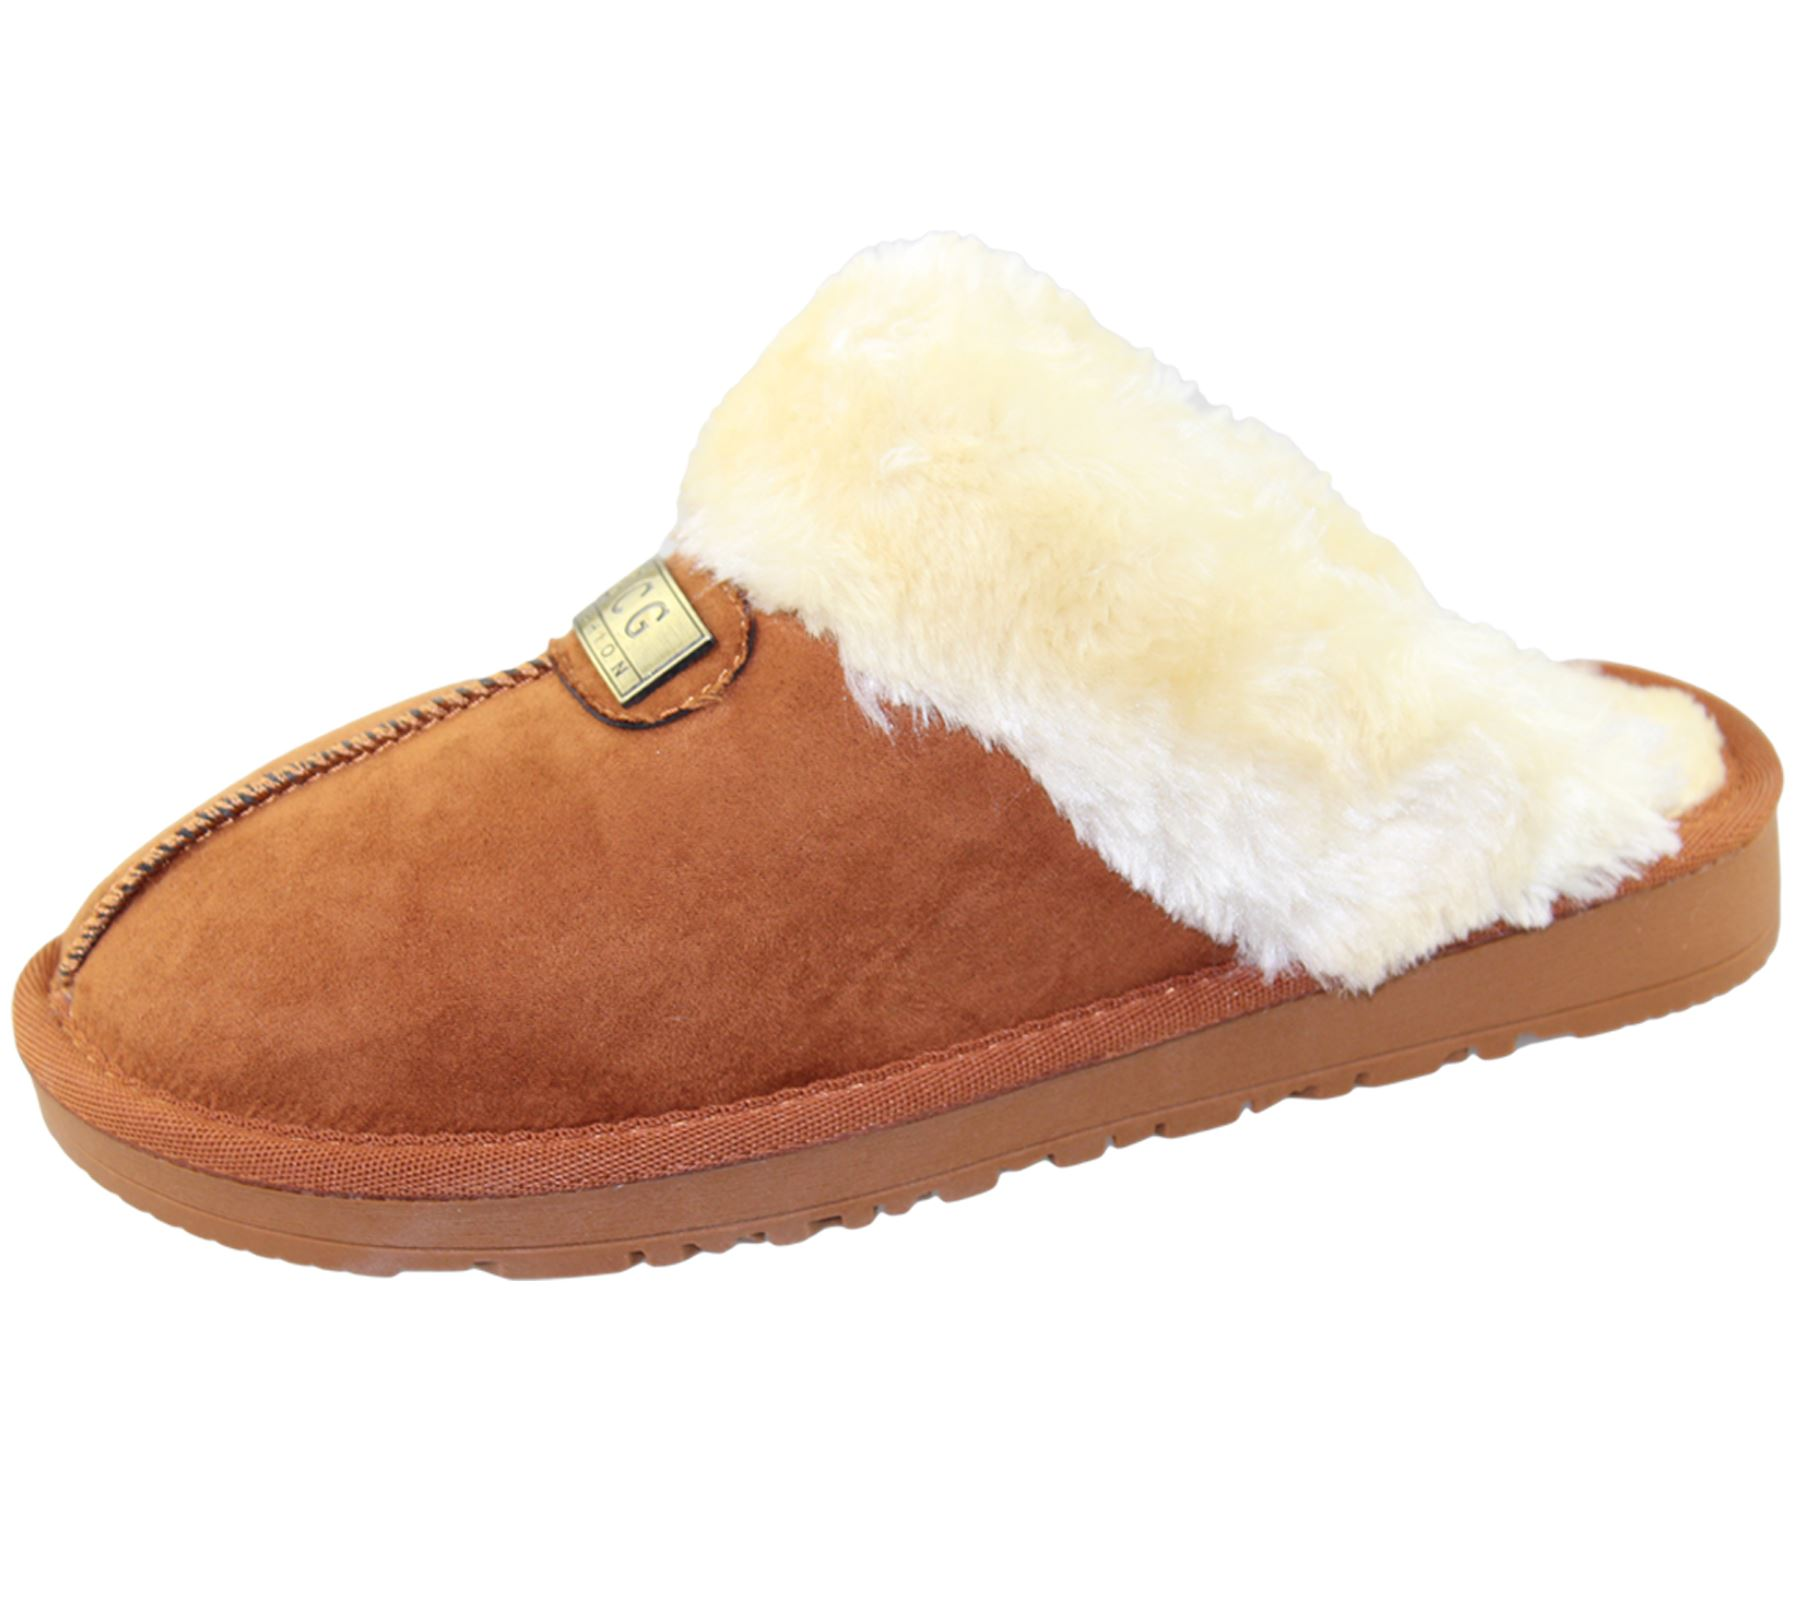 Womens-Fur-Lined-Slippers-Ladies-Mules-Non-Slip-Rubber-Sole-Shoes miniatura 24